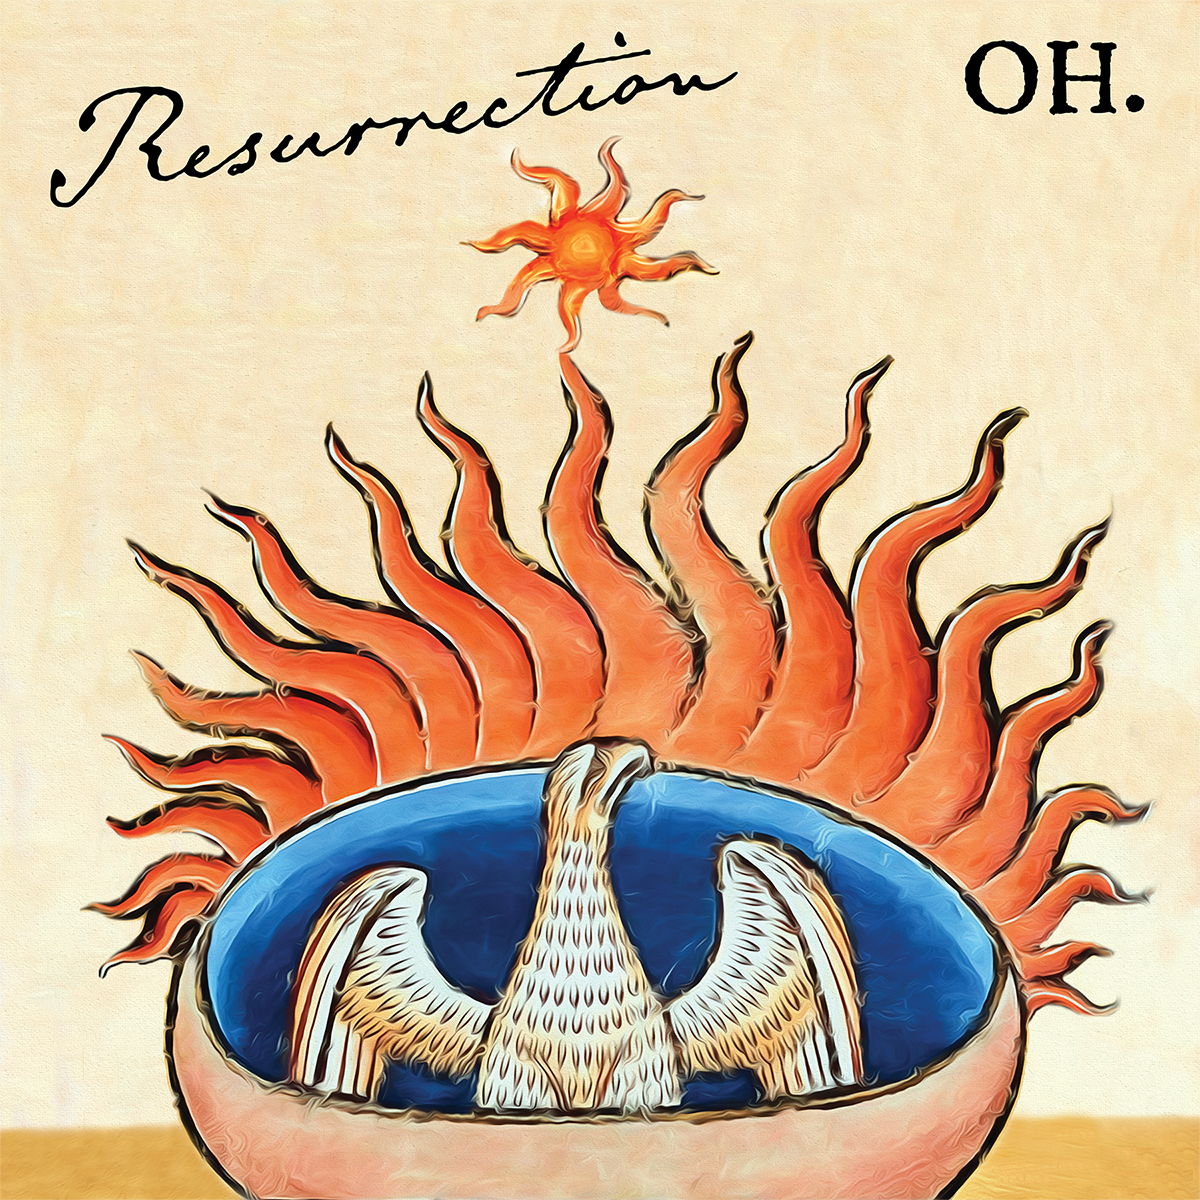 """Resurrection"" from the ""Metallia"" album by Oh."